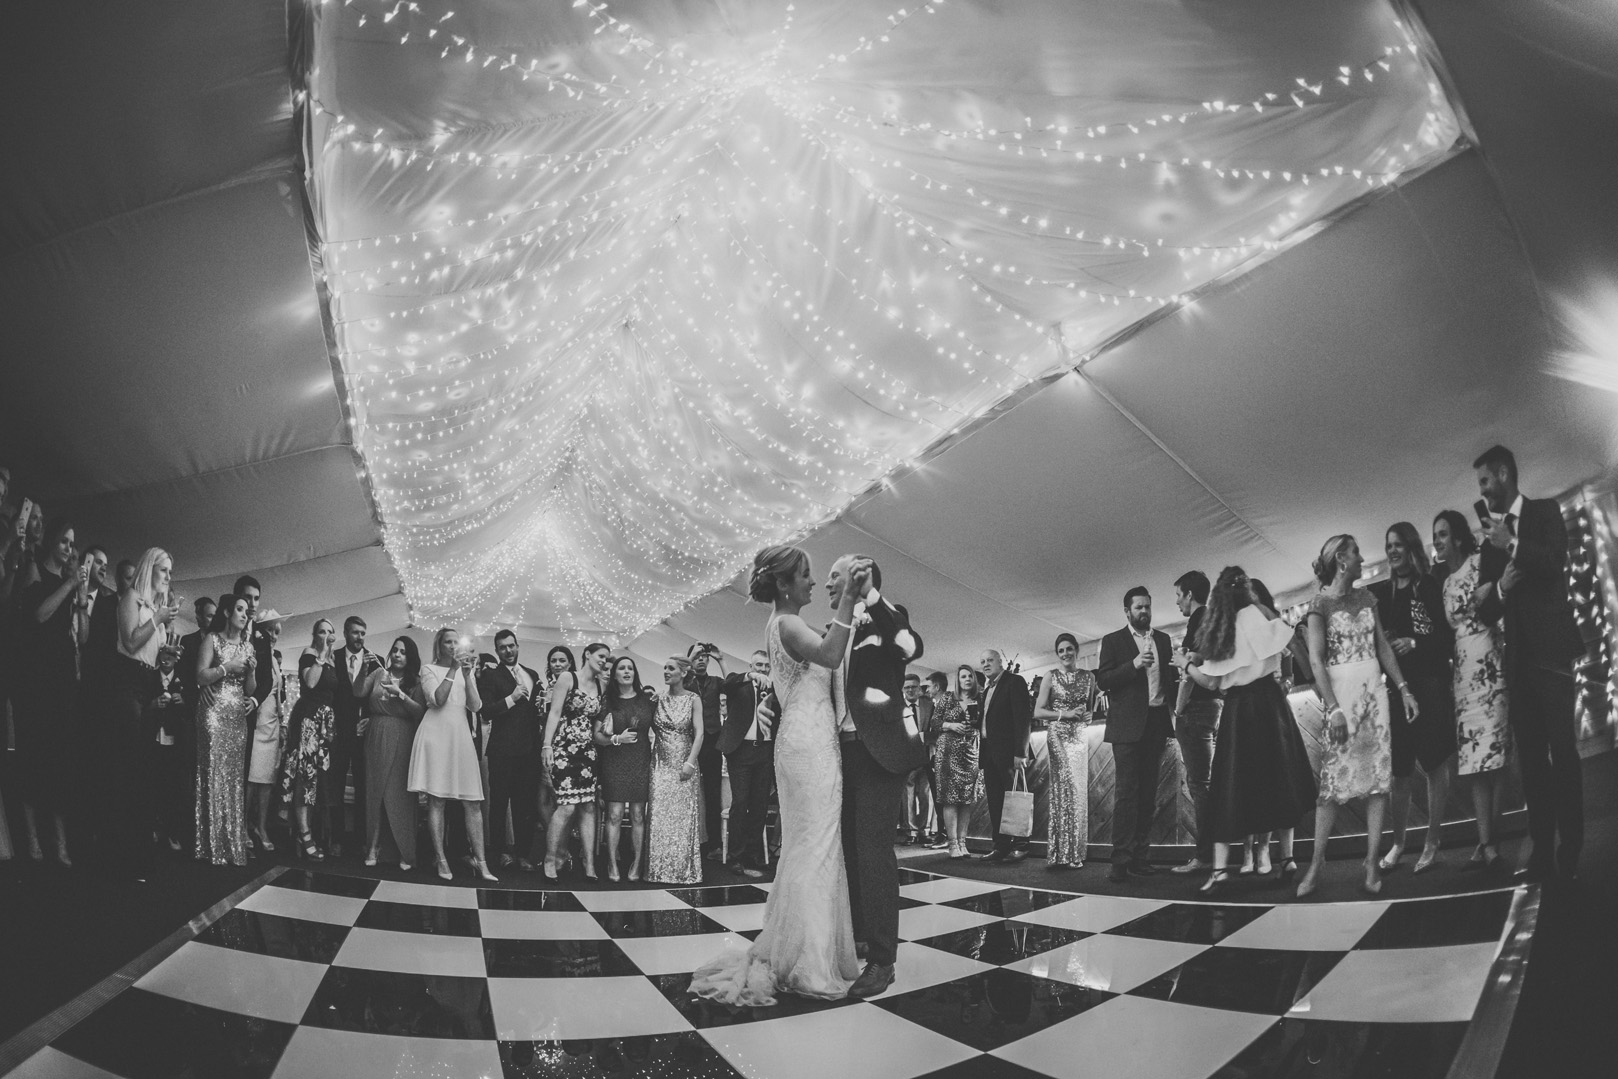 First Dance at The Normans. Photo by www.inspirephotos.co.uk